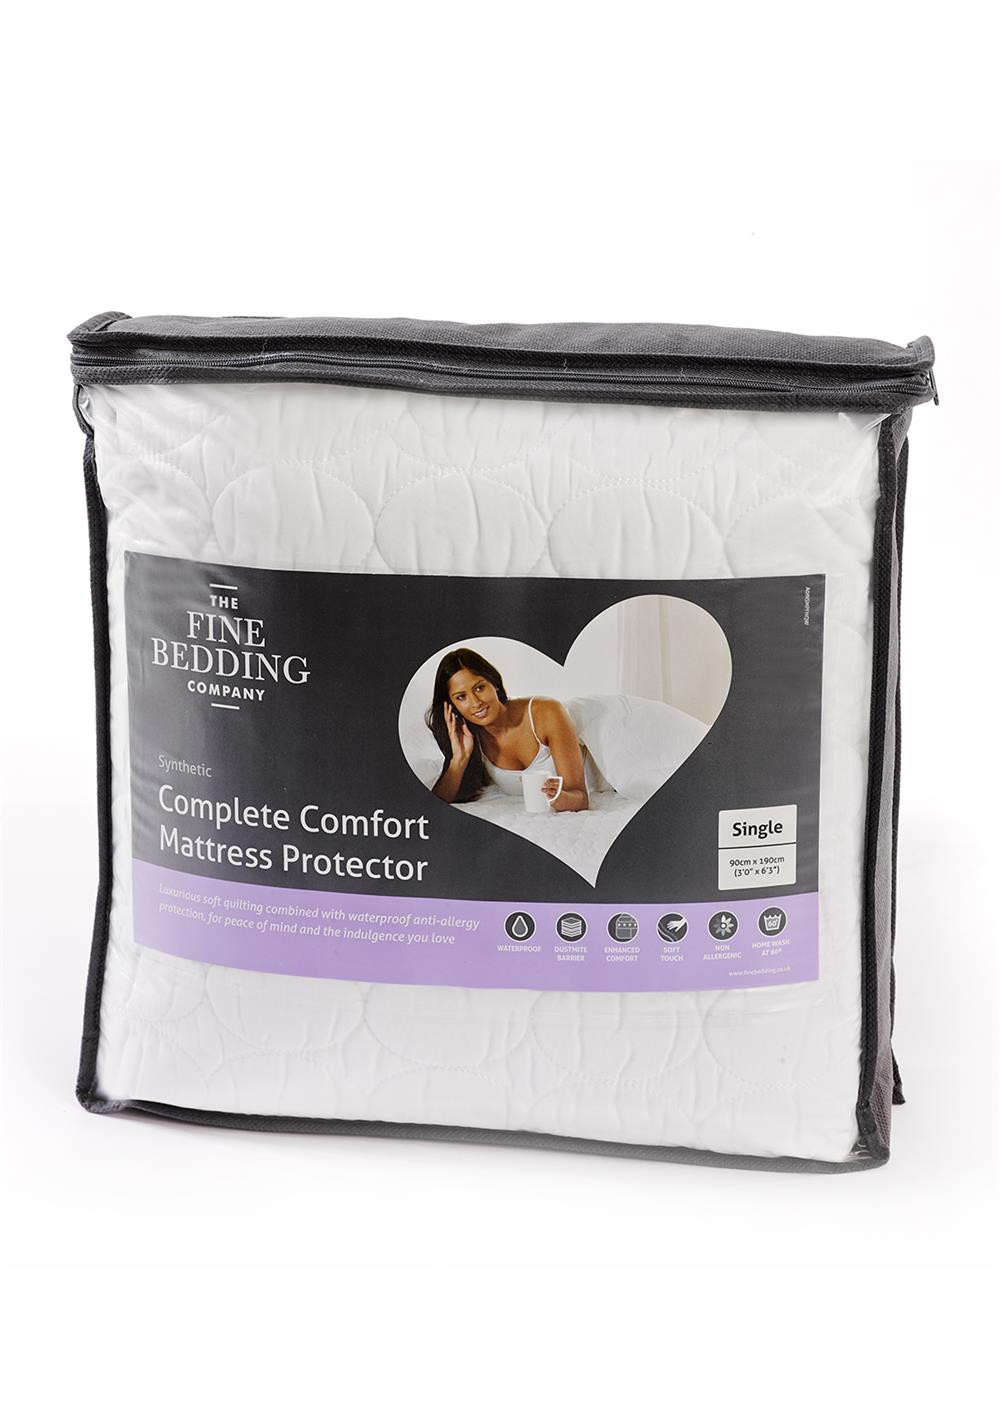 The Fine Bedding Company Complete Comfort Mattress Protector